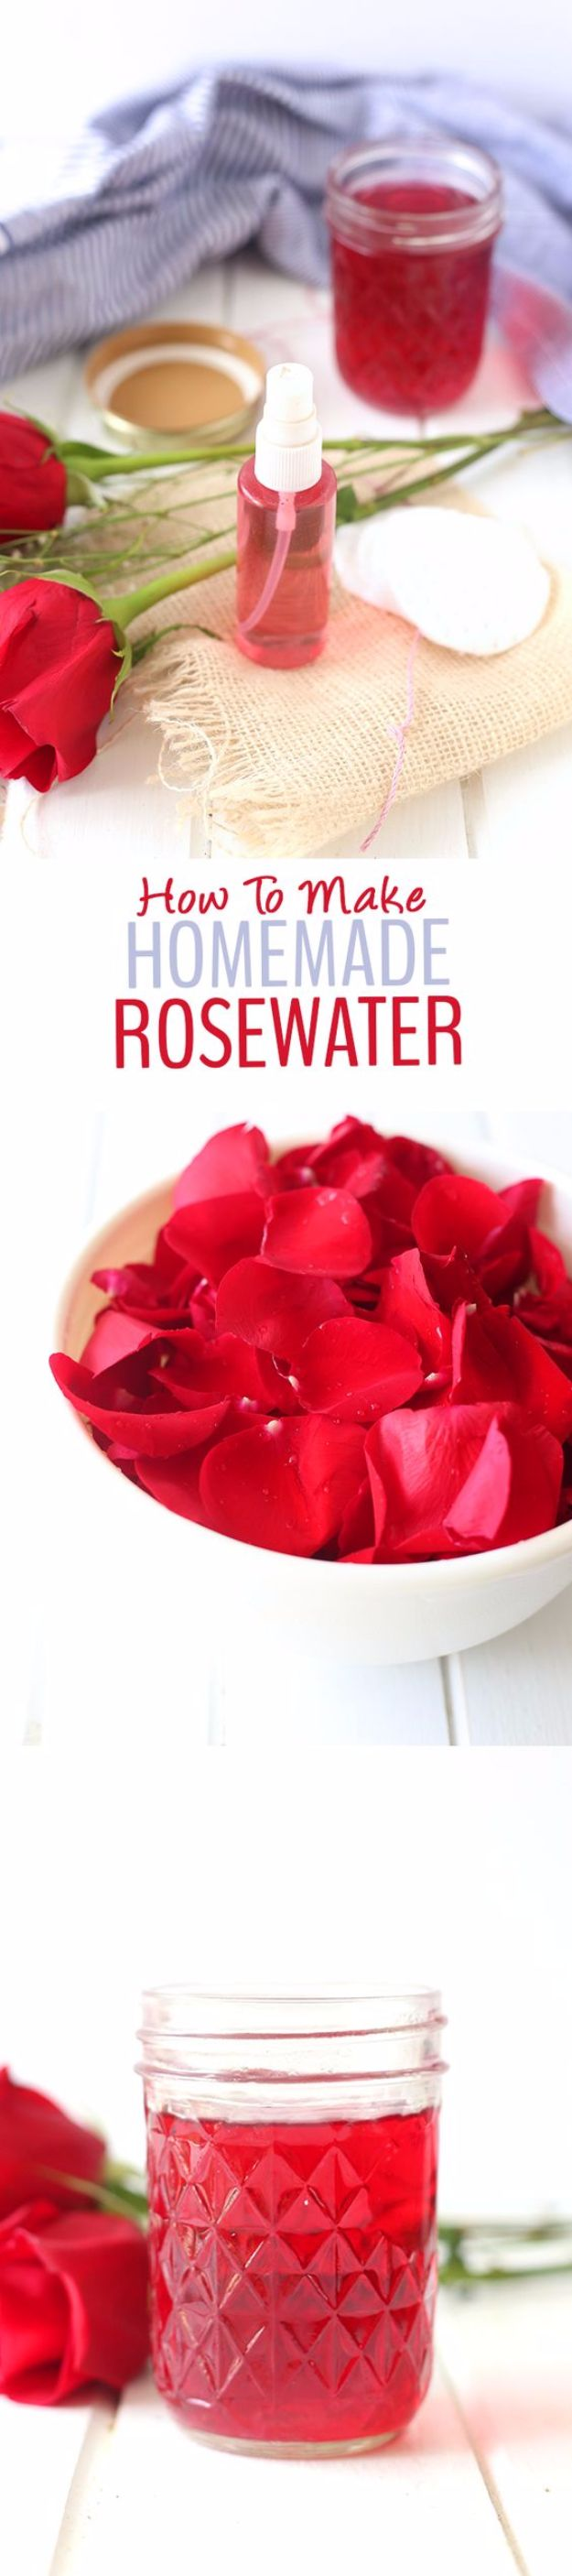 DIY Ideas With Rose Petals - DIY Rosewater Face Toner - Crafts and DIY Projects, Recipes You Can Make With Rose Petals - Creative Home Decor and Gift Ideas Make Awesome Mothers Day and Christmas Gifts - Crafts and Do It Yourself by DIY JOY #rosecrafts #diygifts